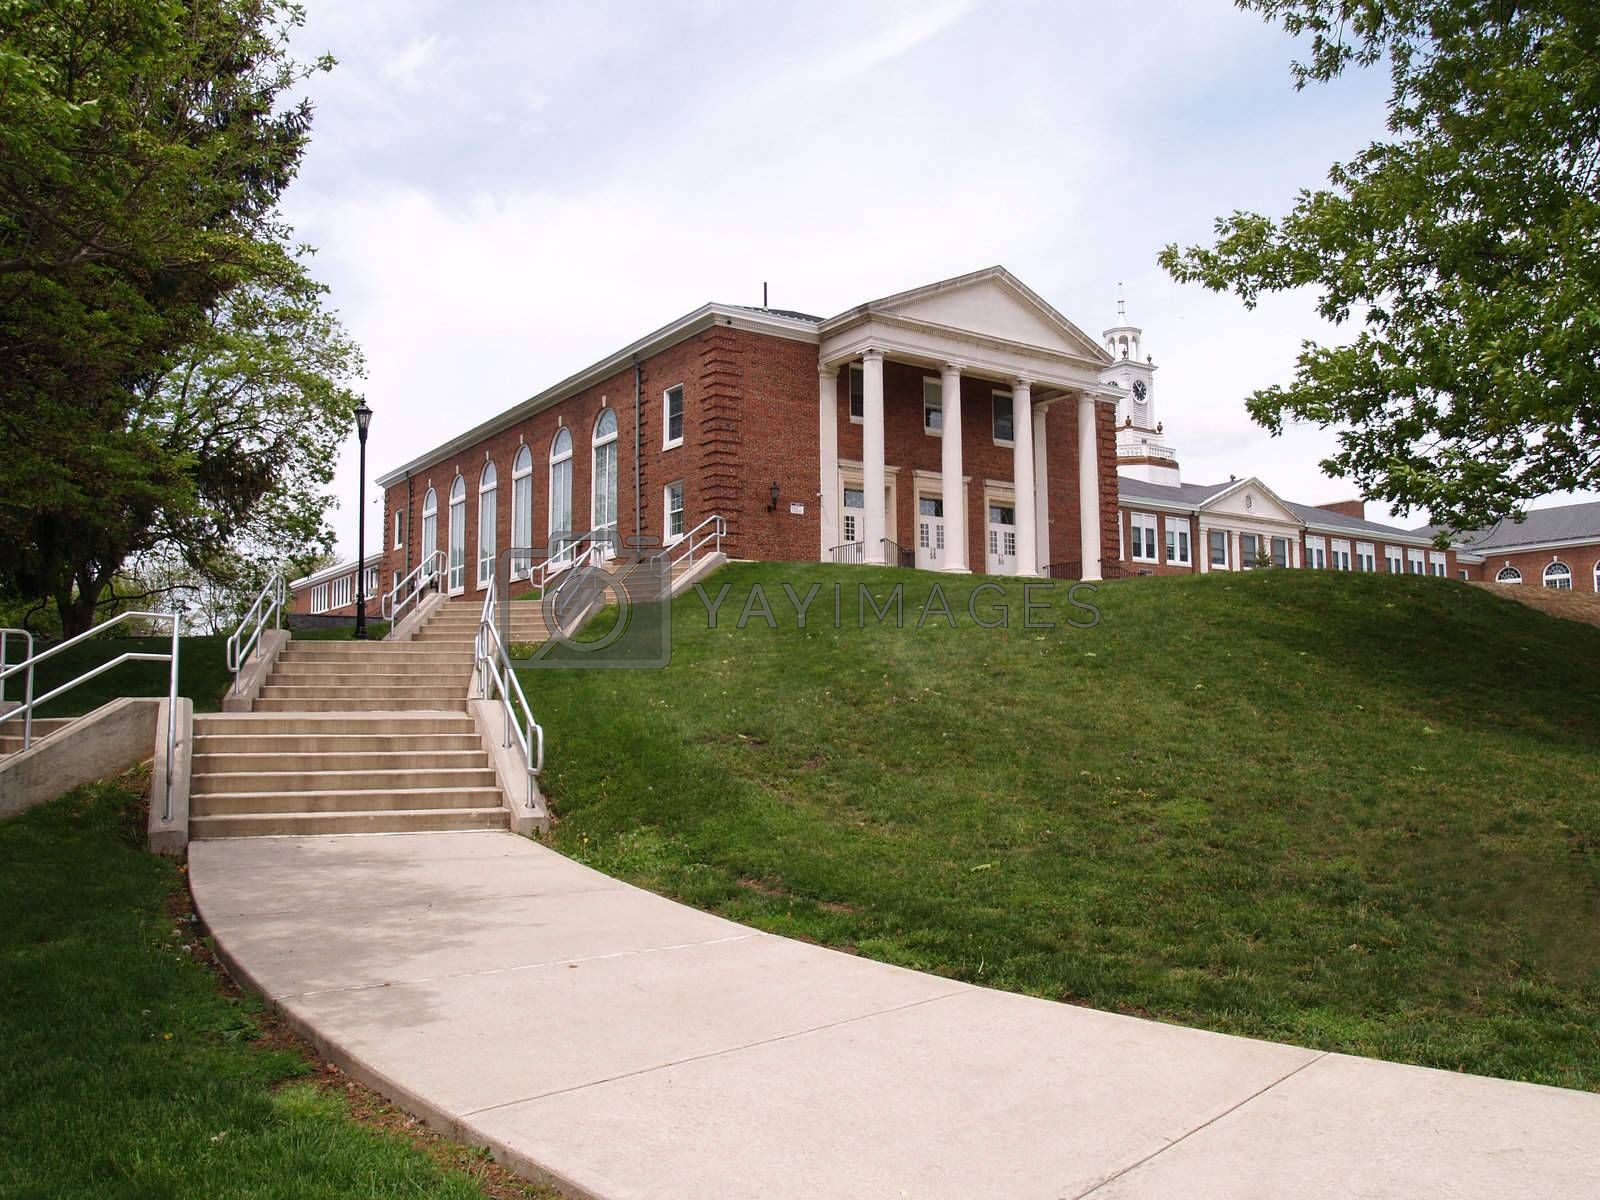 a sidewalk and steps leading to an old high school on a hill